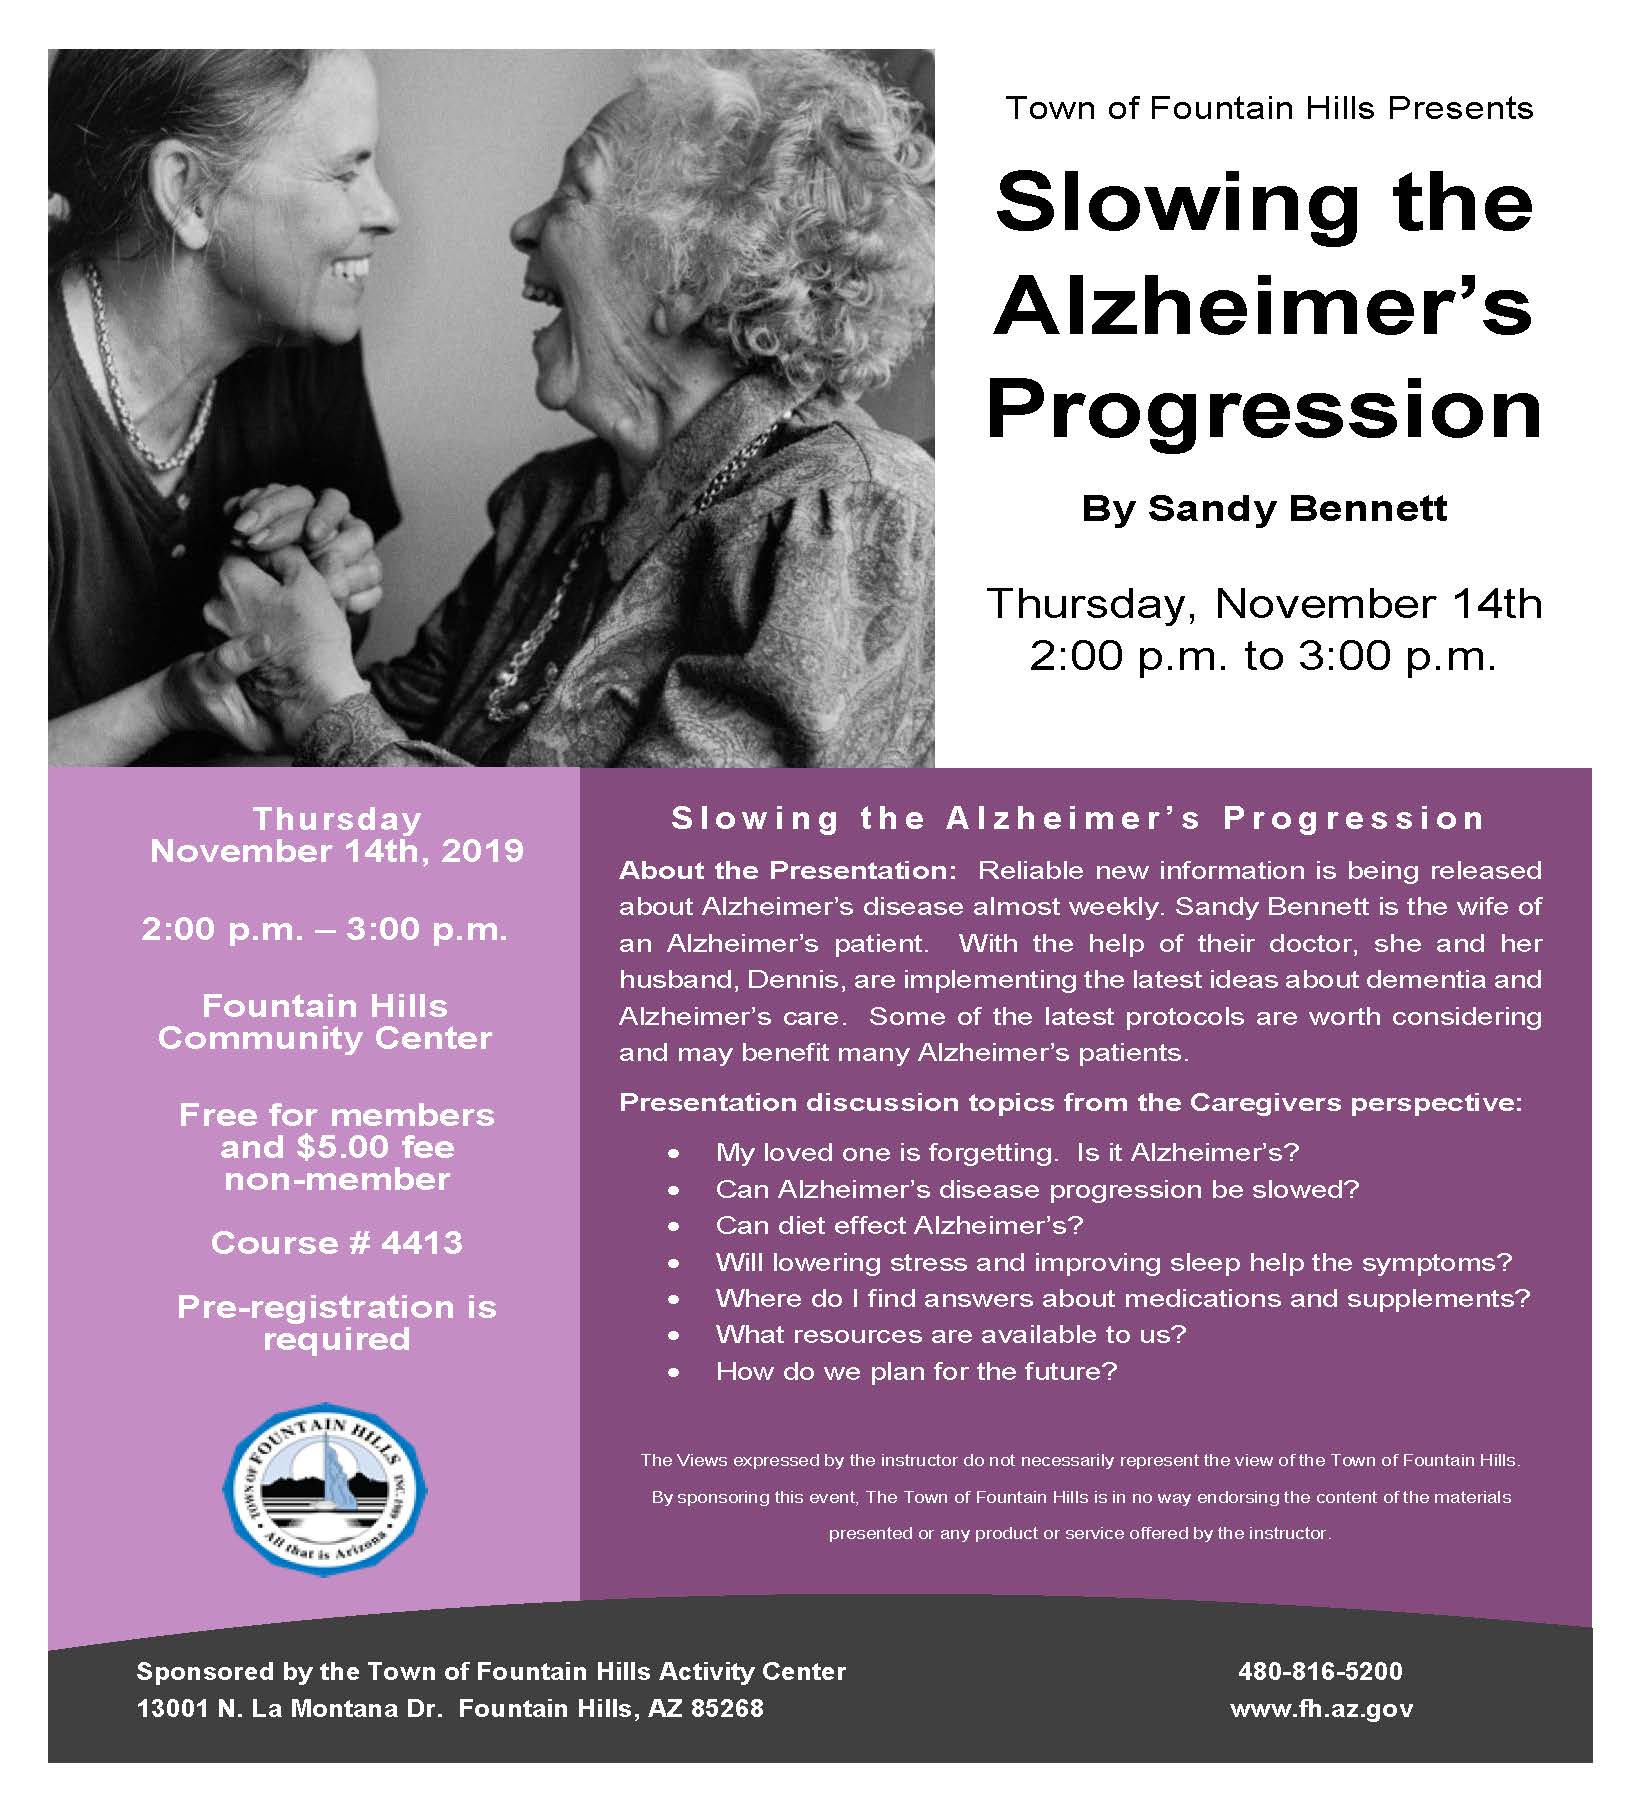 Slowing the Alzheimers Progression